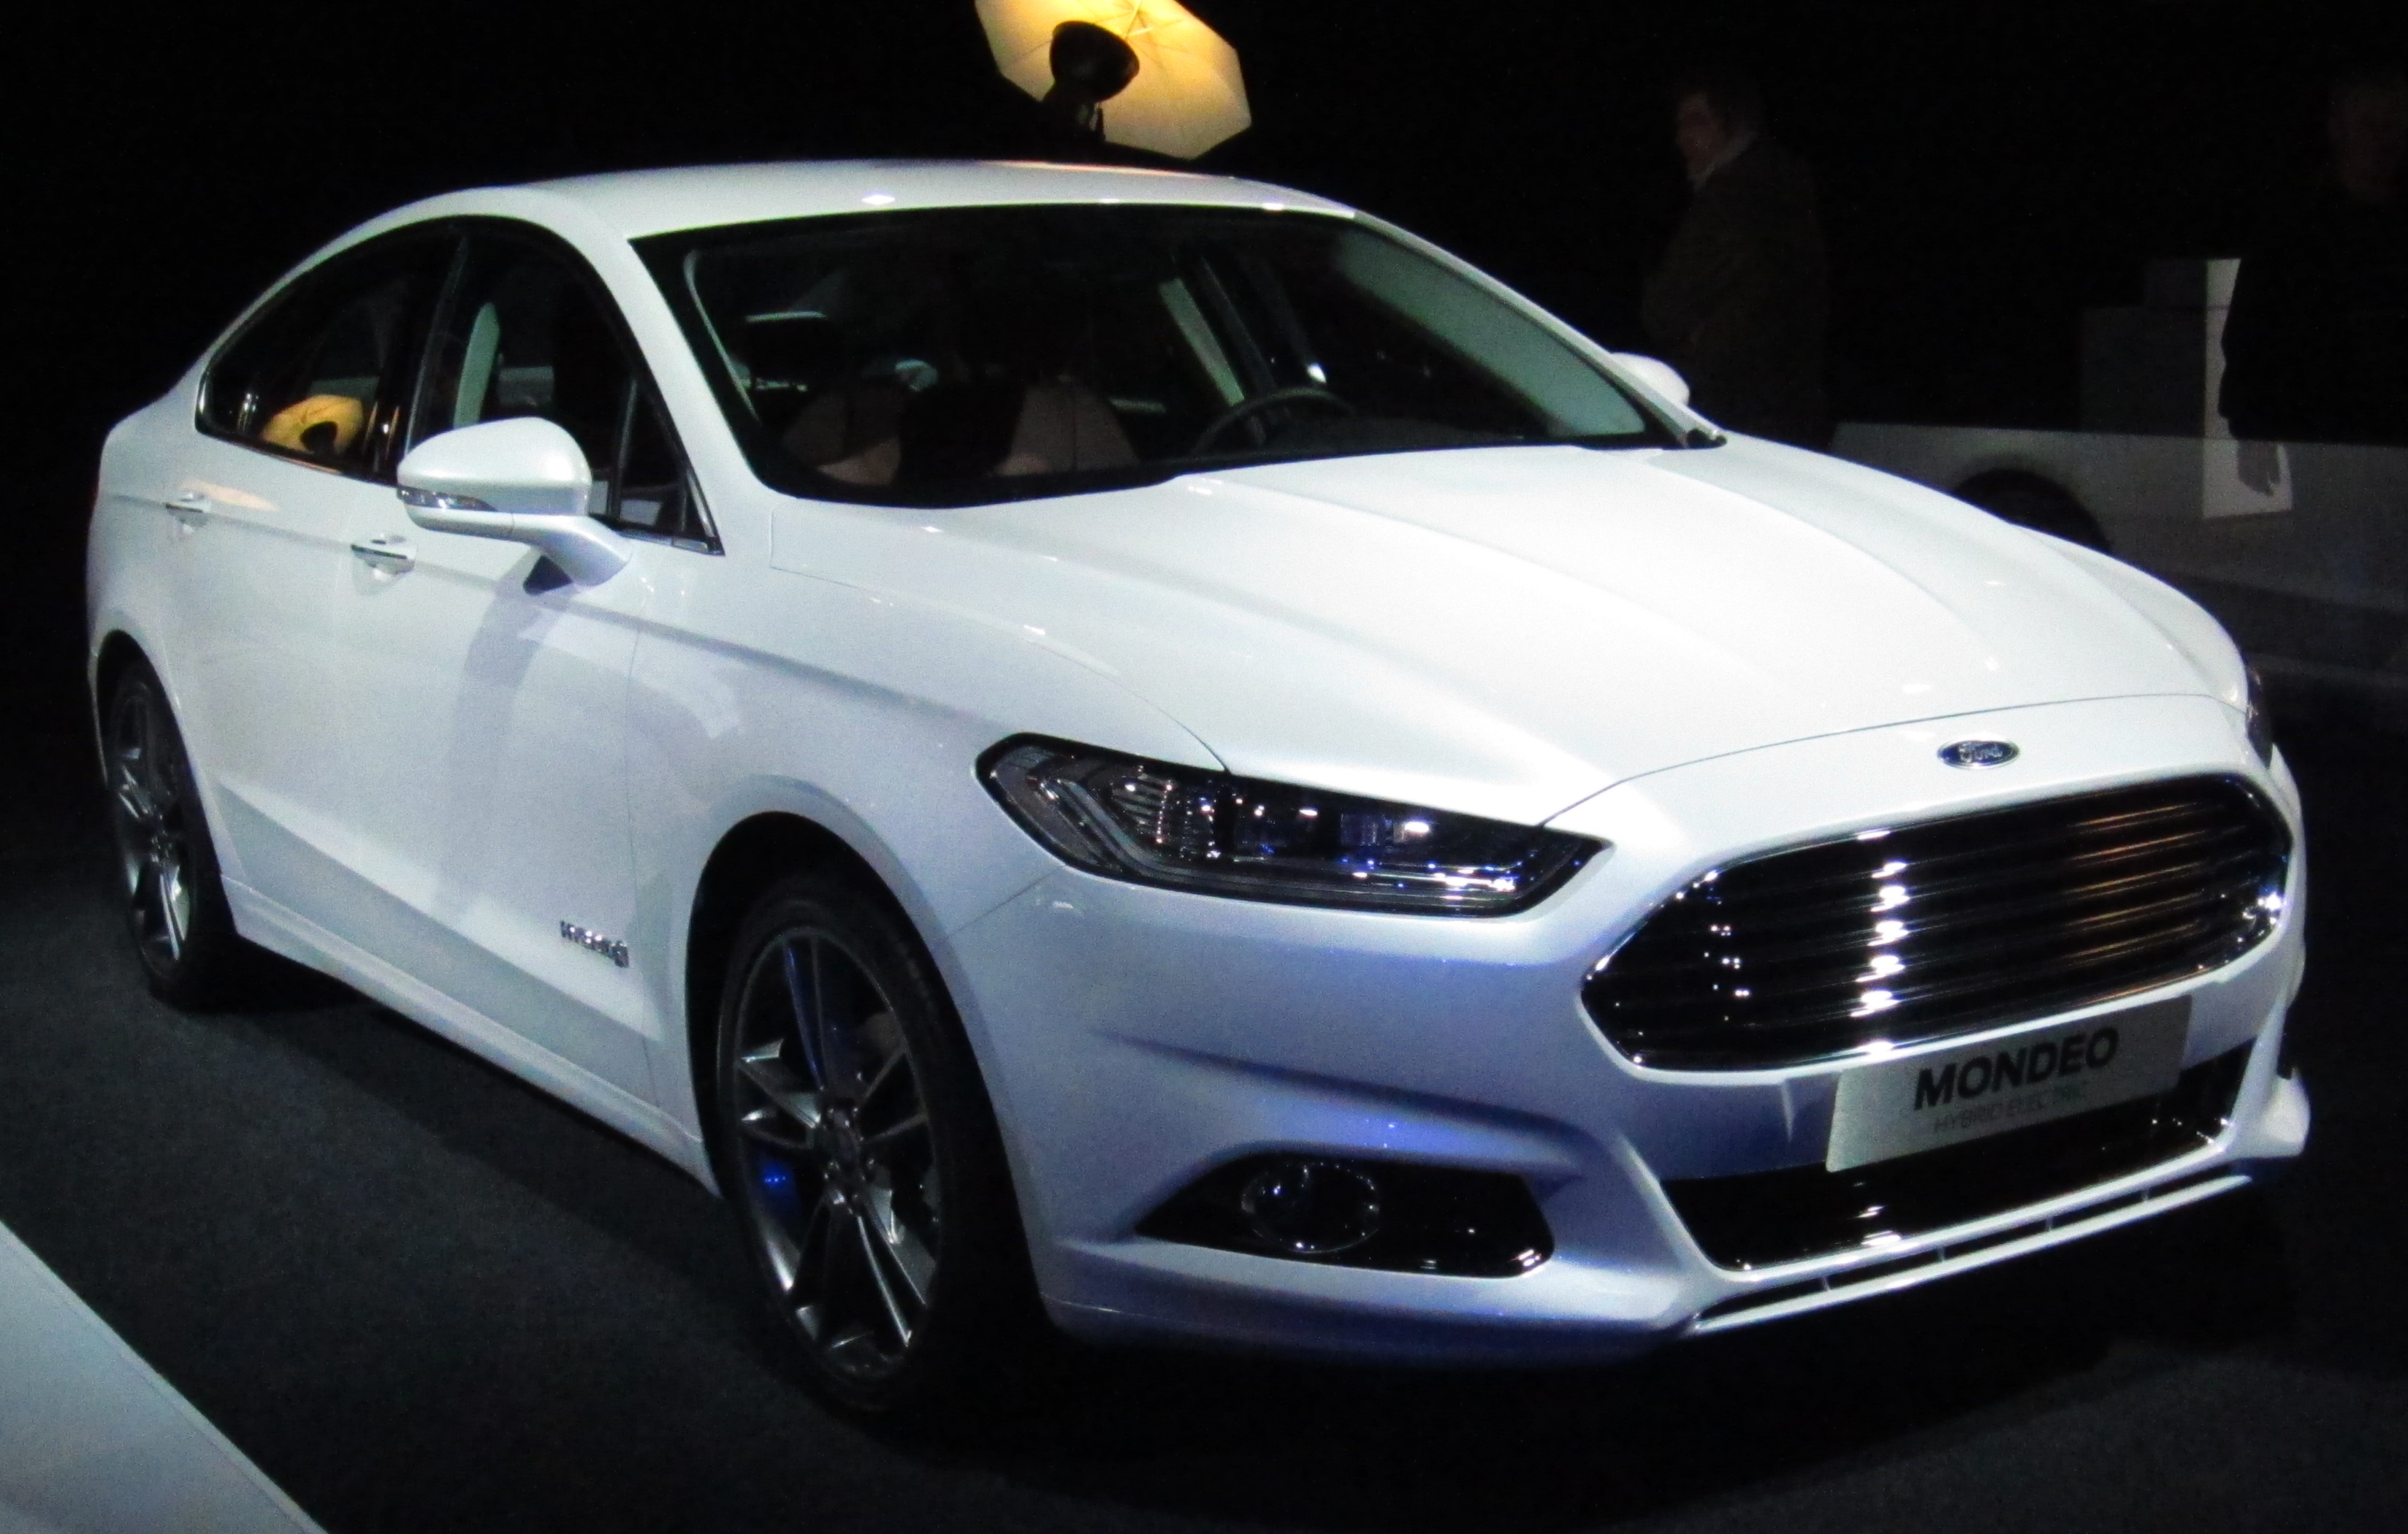 Ford modeo photo - 2